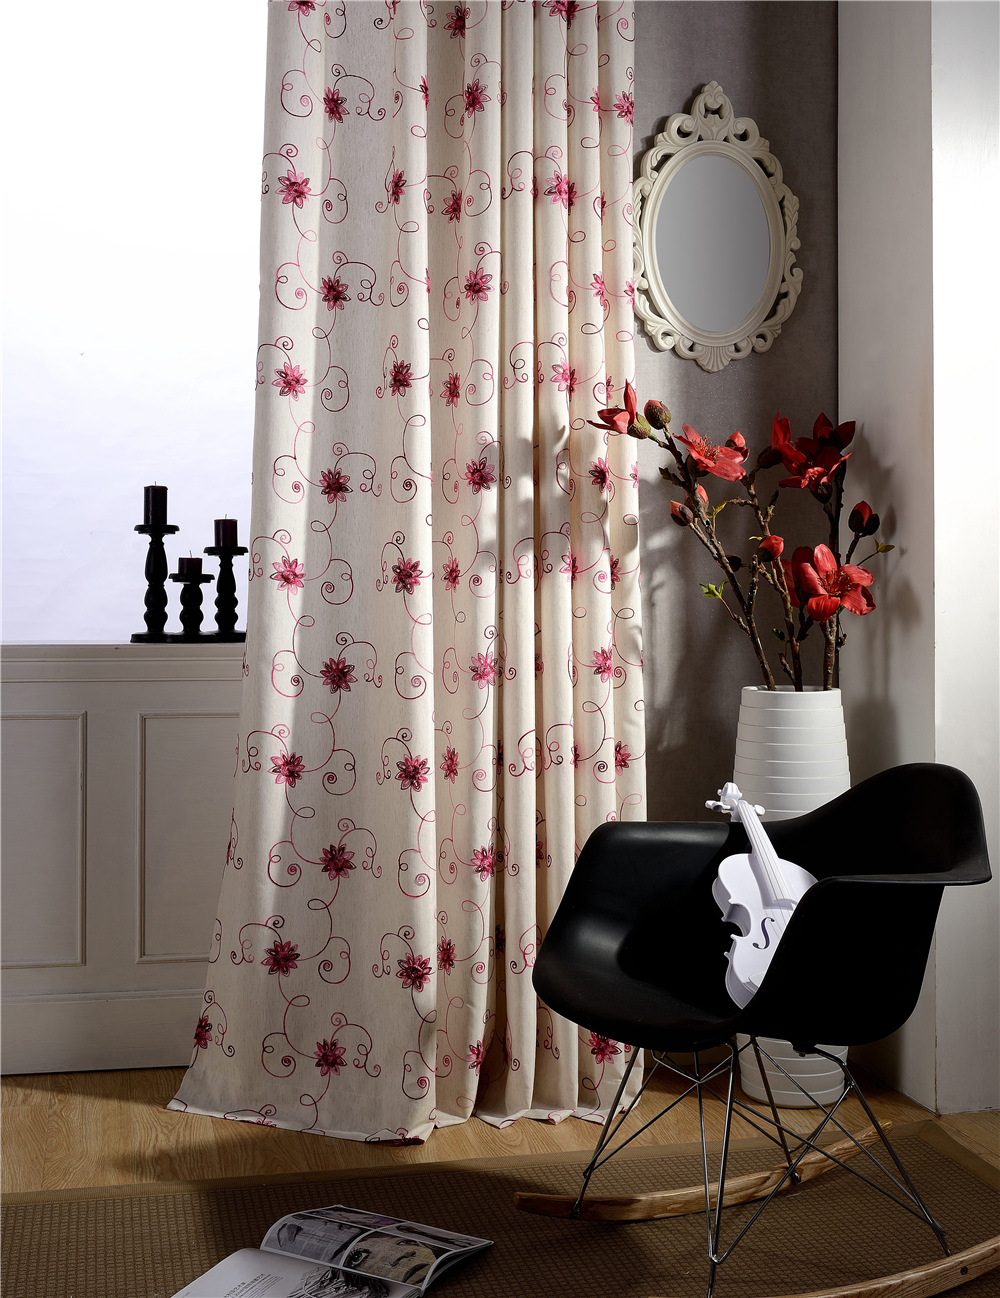 Red Embroidered Drapes Polyester cotton Fabrics Floral Curtains <font><b>Decoration</b></font> <font><b>home</b></font> Pastoral <font><b>Elegant</b></font> Living room curtains B16199-1